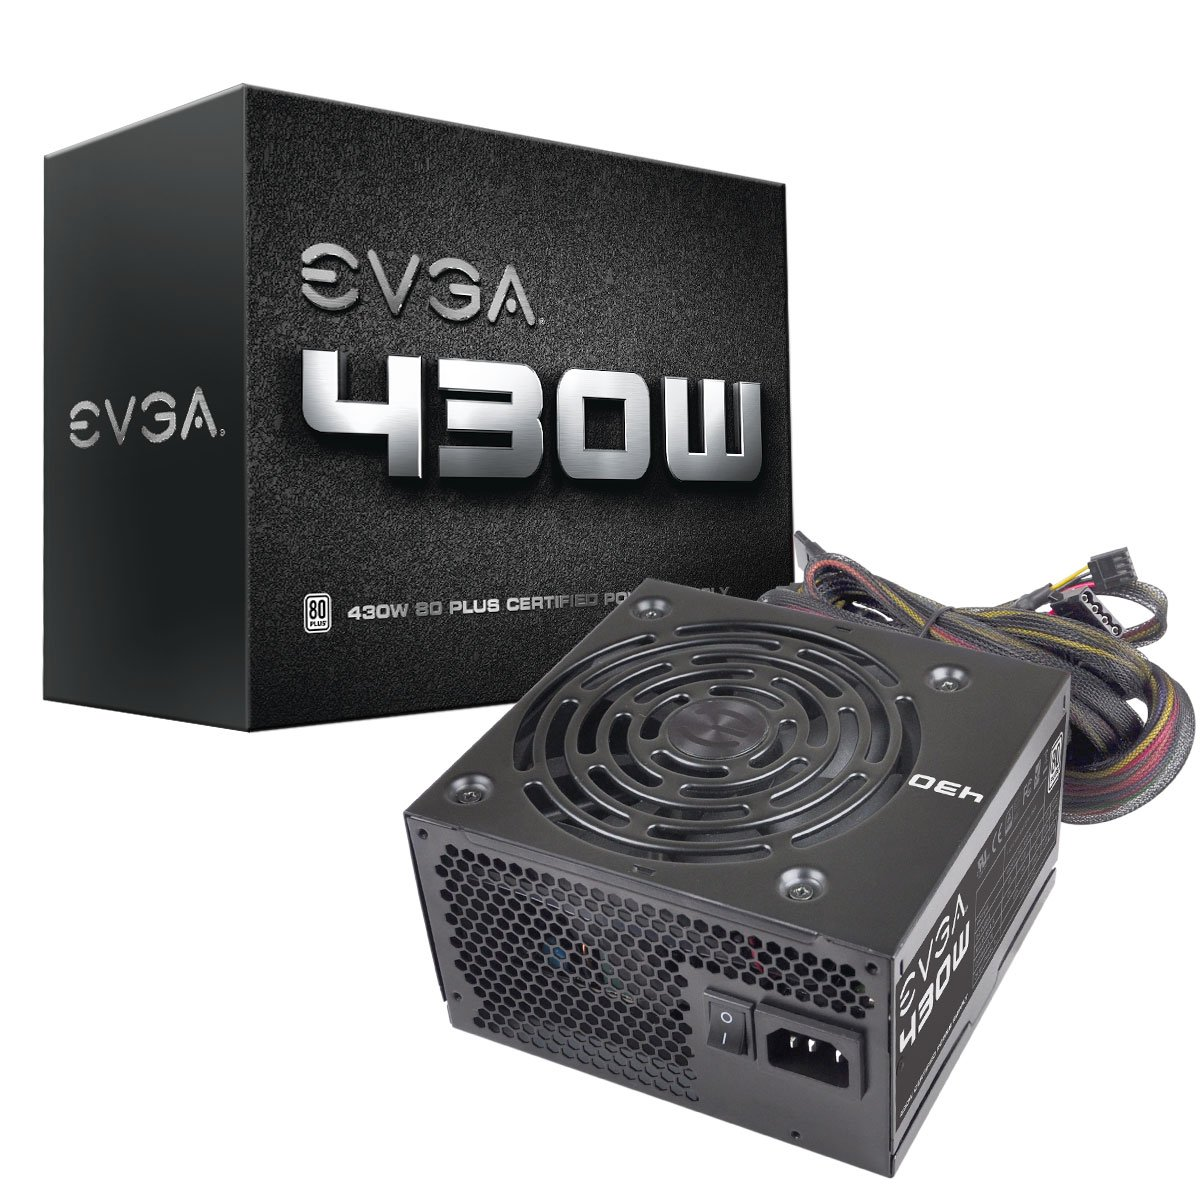 EVGA 430 Watts 80PLUS Power Supply